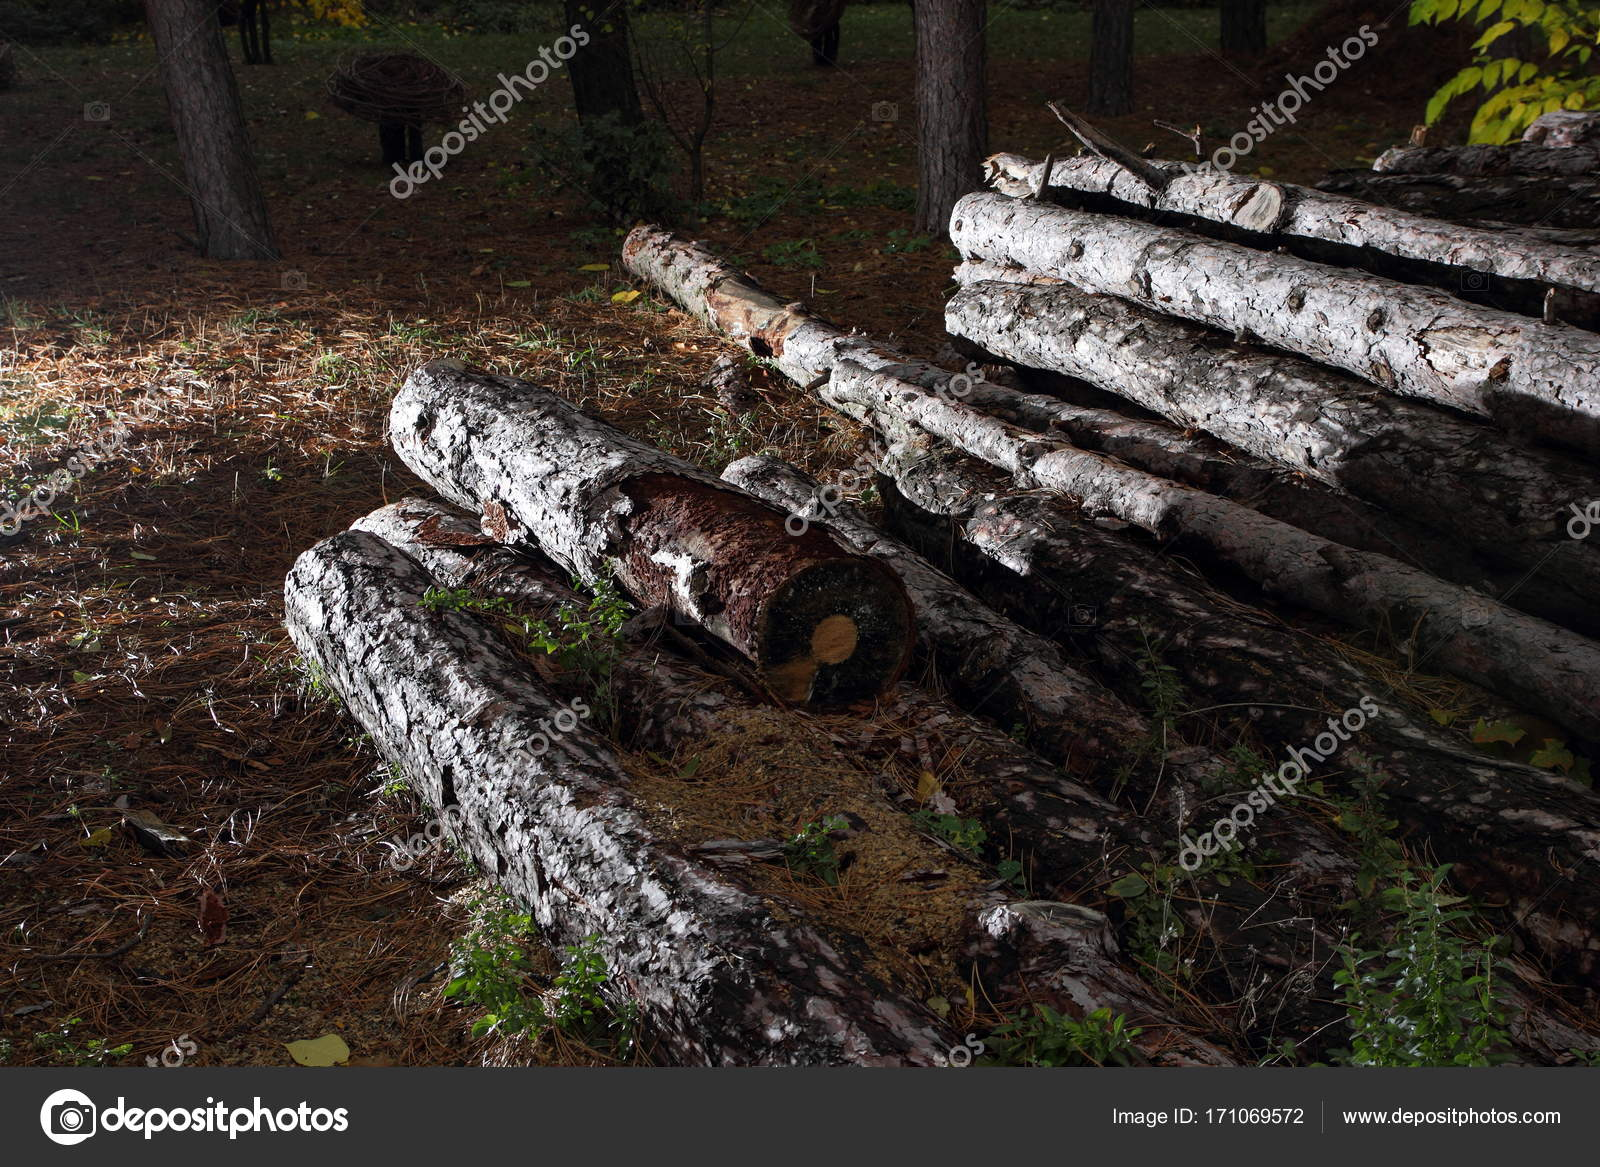 Deforestation, felled trunks of pine trees in a forest, trees